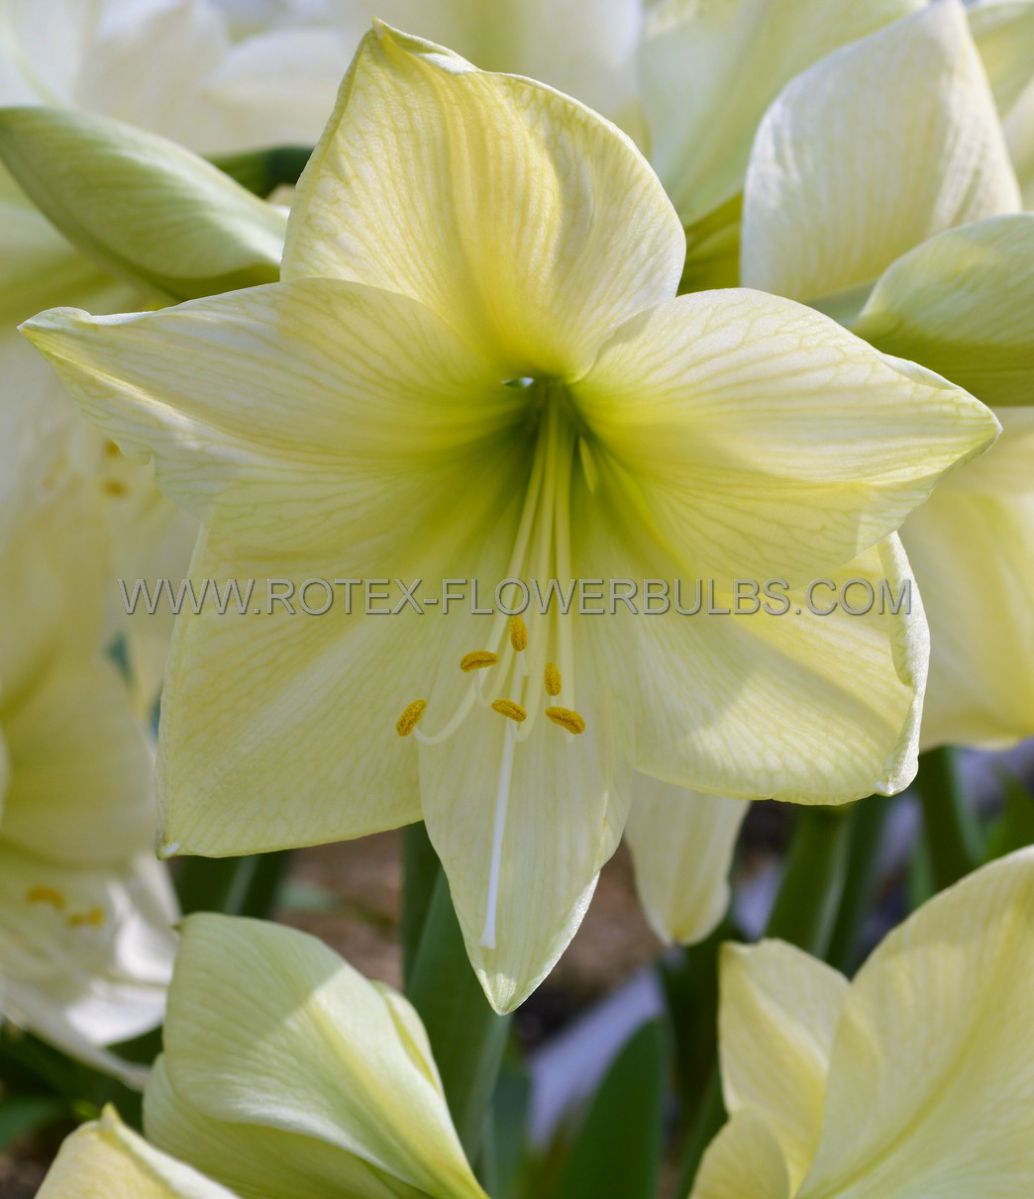 hippeastrum amaryllis unique large flowering lemon star 3436 cm 6 popen top box